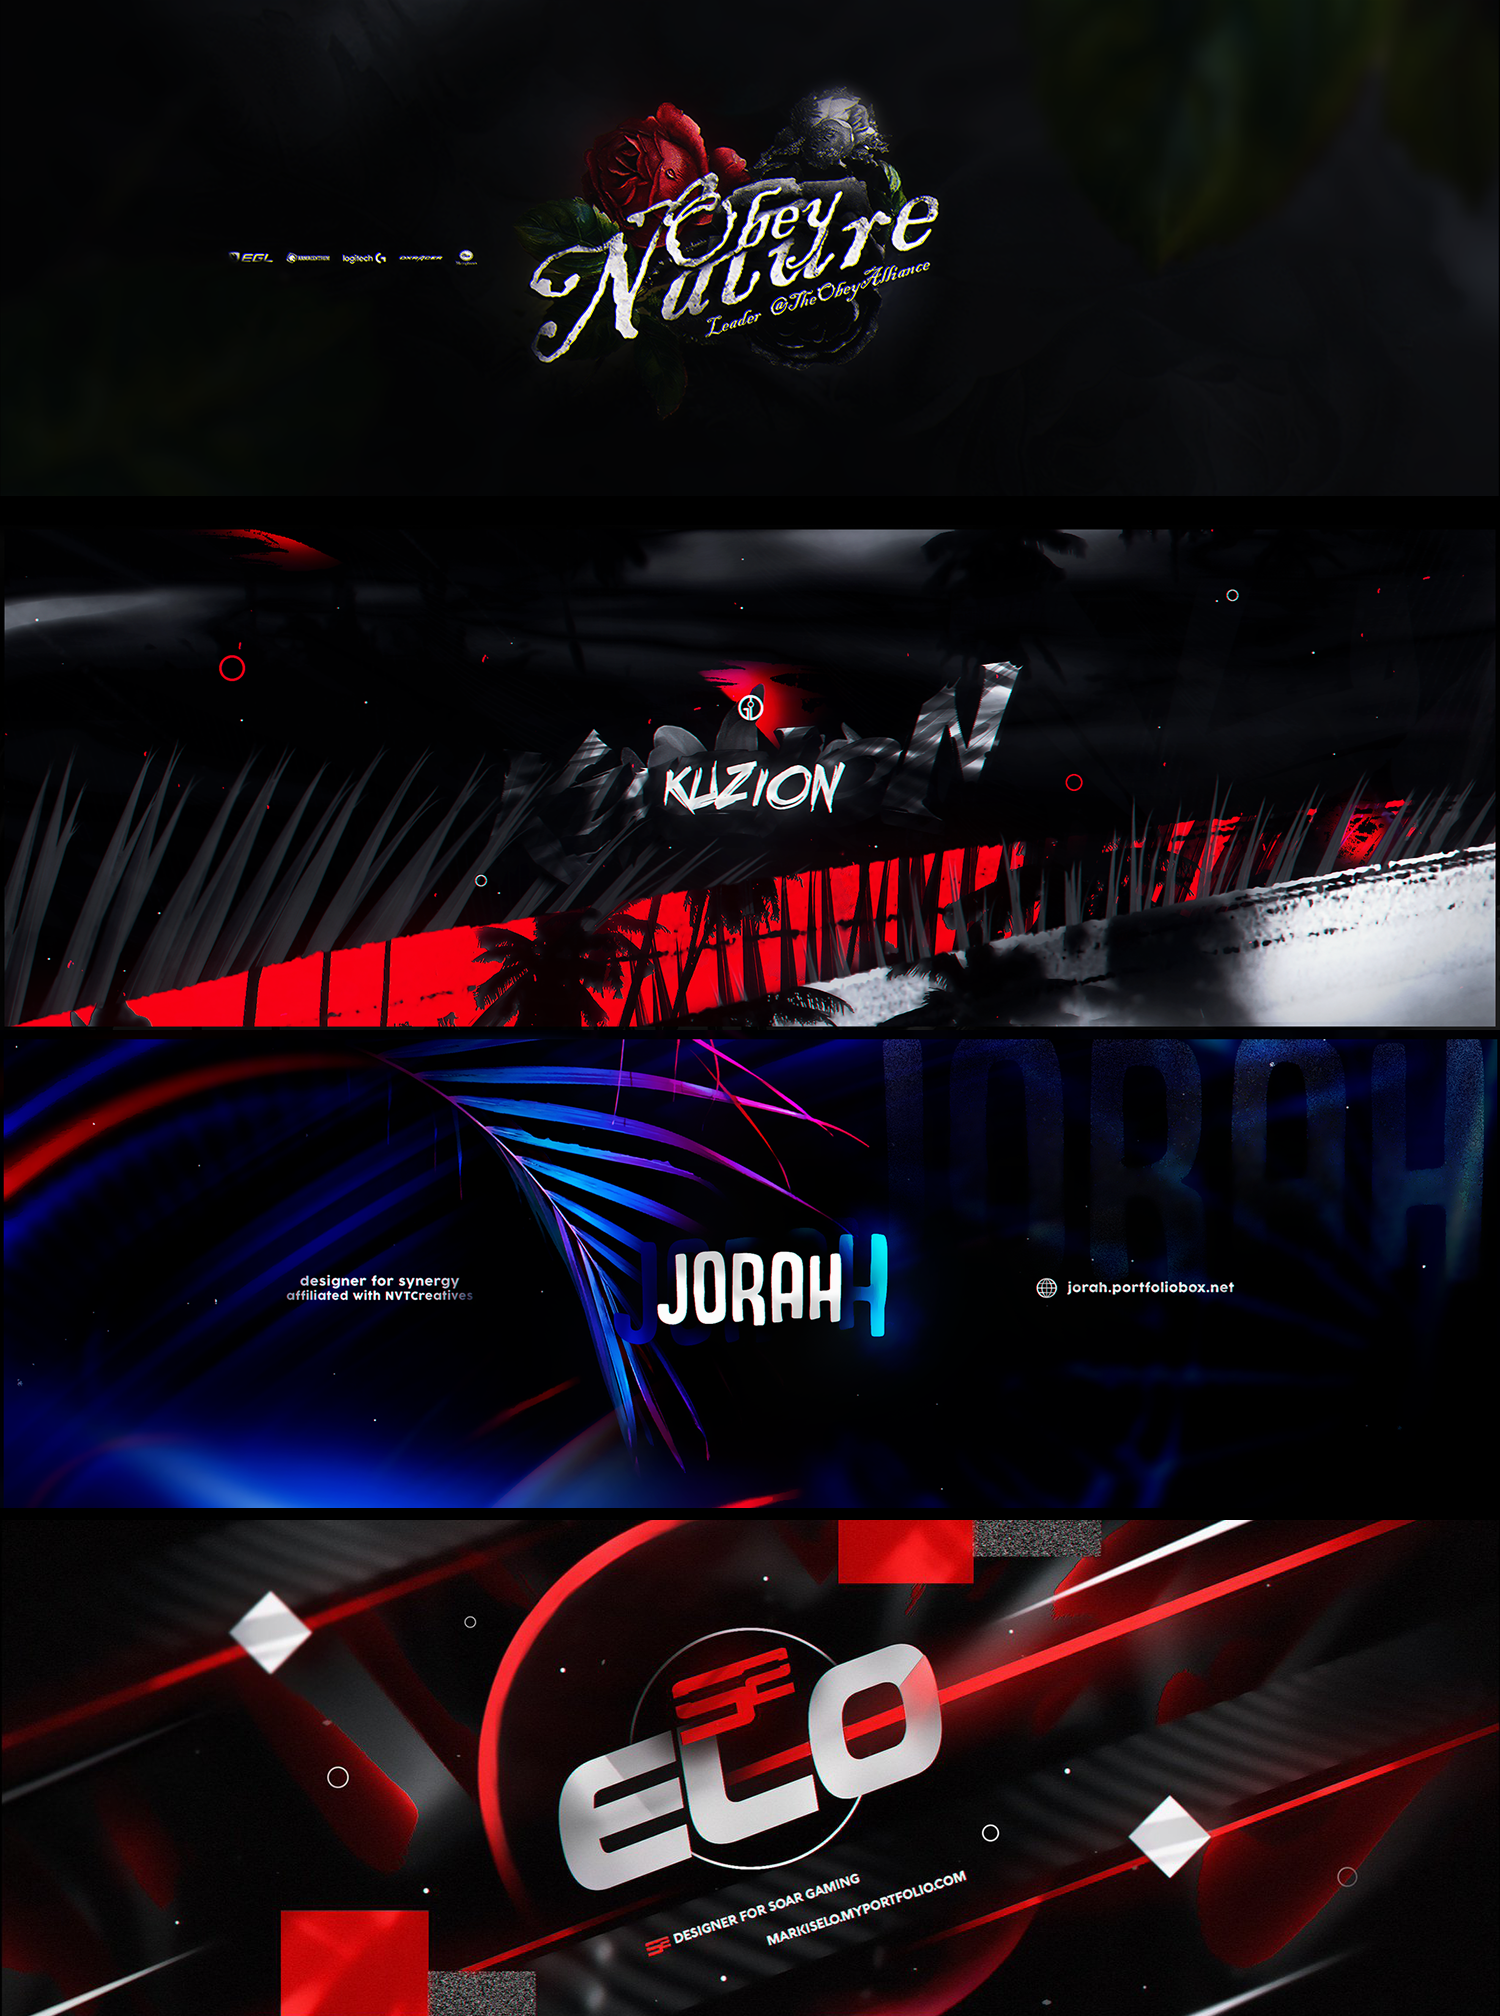 Pin By Electrixiii On Game Id Youtube Banner Design Graphic Design Flyer Logo Design Creative